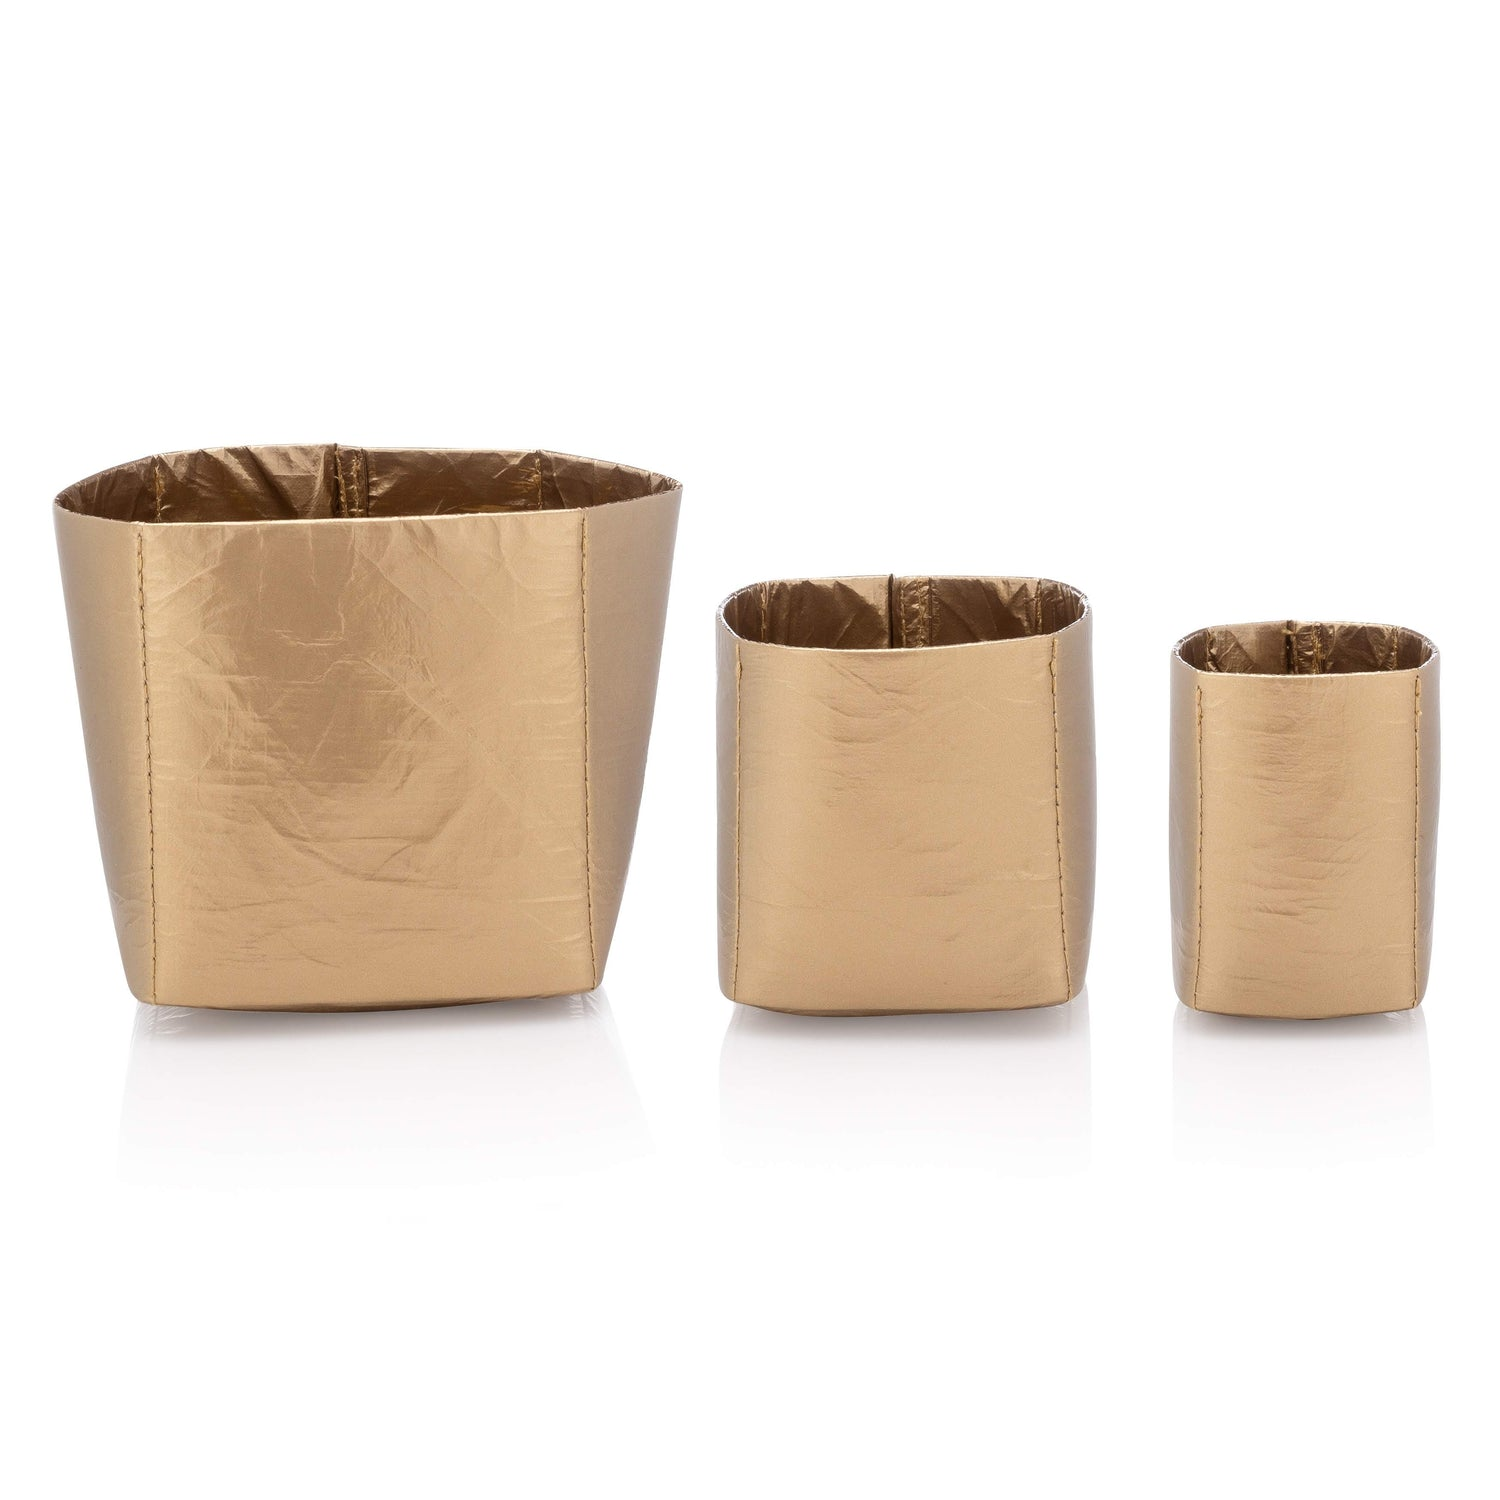 Cup Trio - Metallic Shiny Gold Cup Set